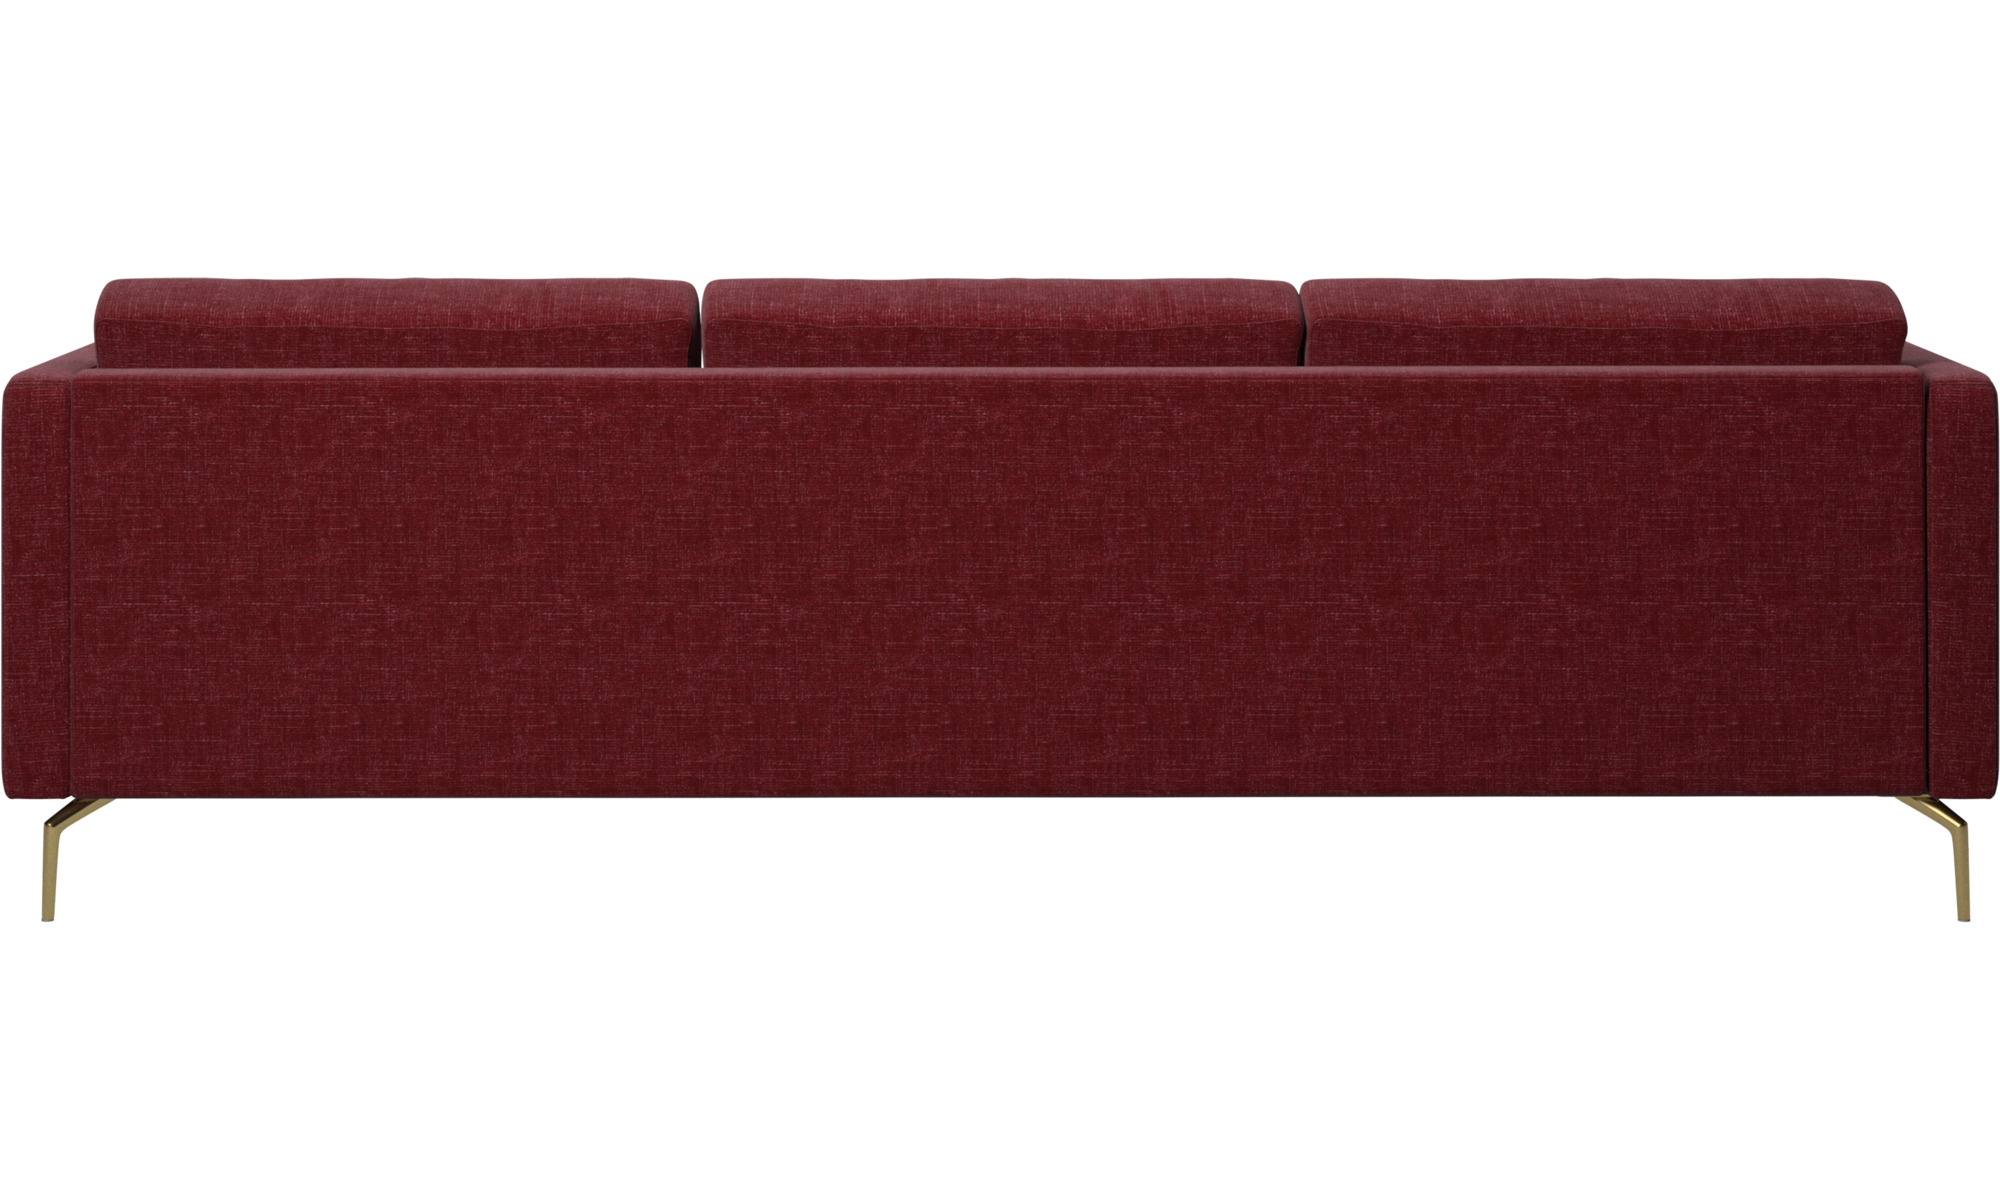 Chaise lounge sofas - Osaka sofa with resting unit, tufted ...